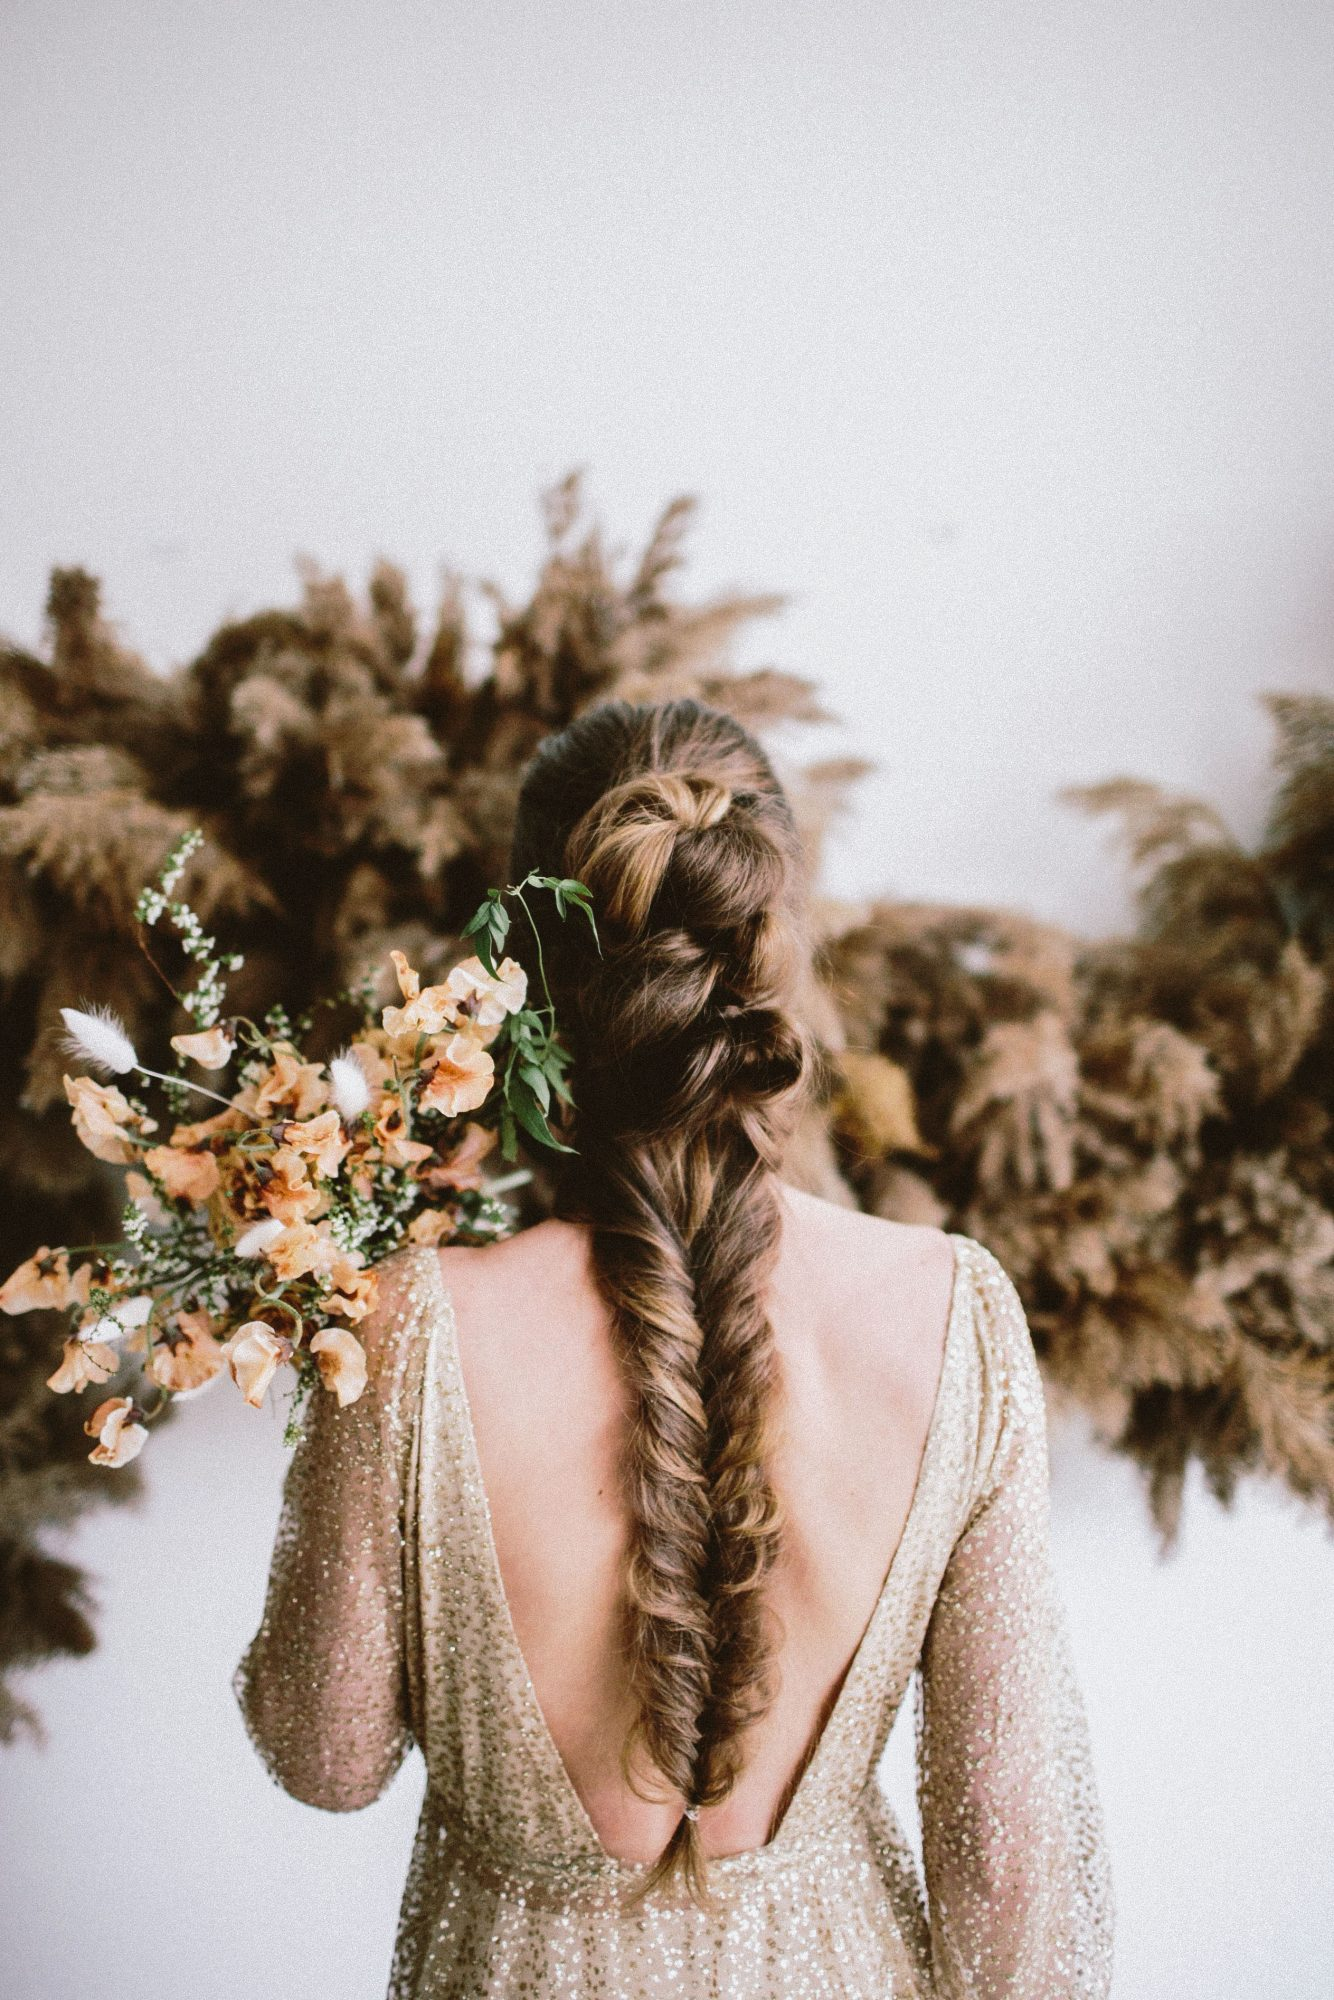 braids alyssa mcelheny photograph